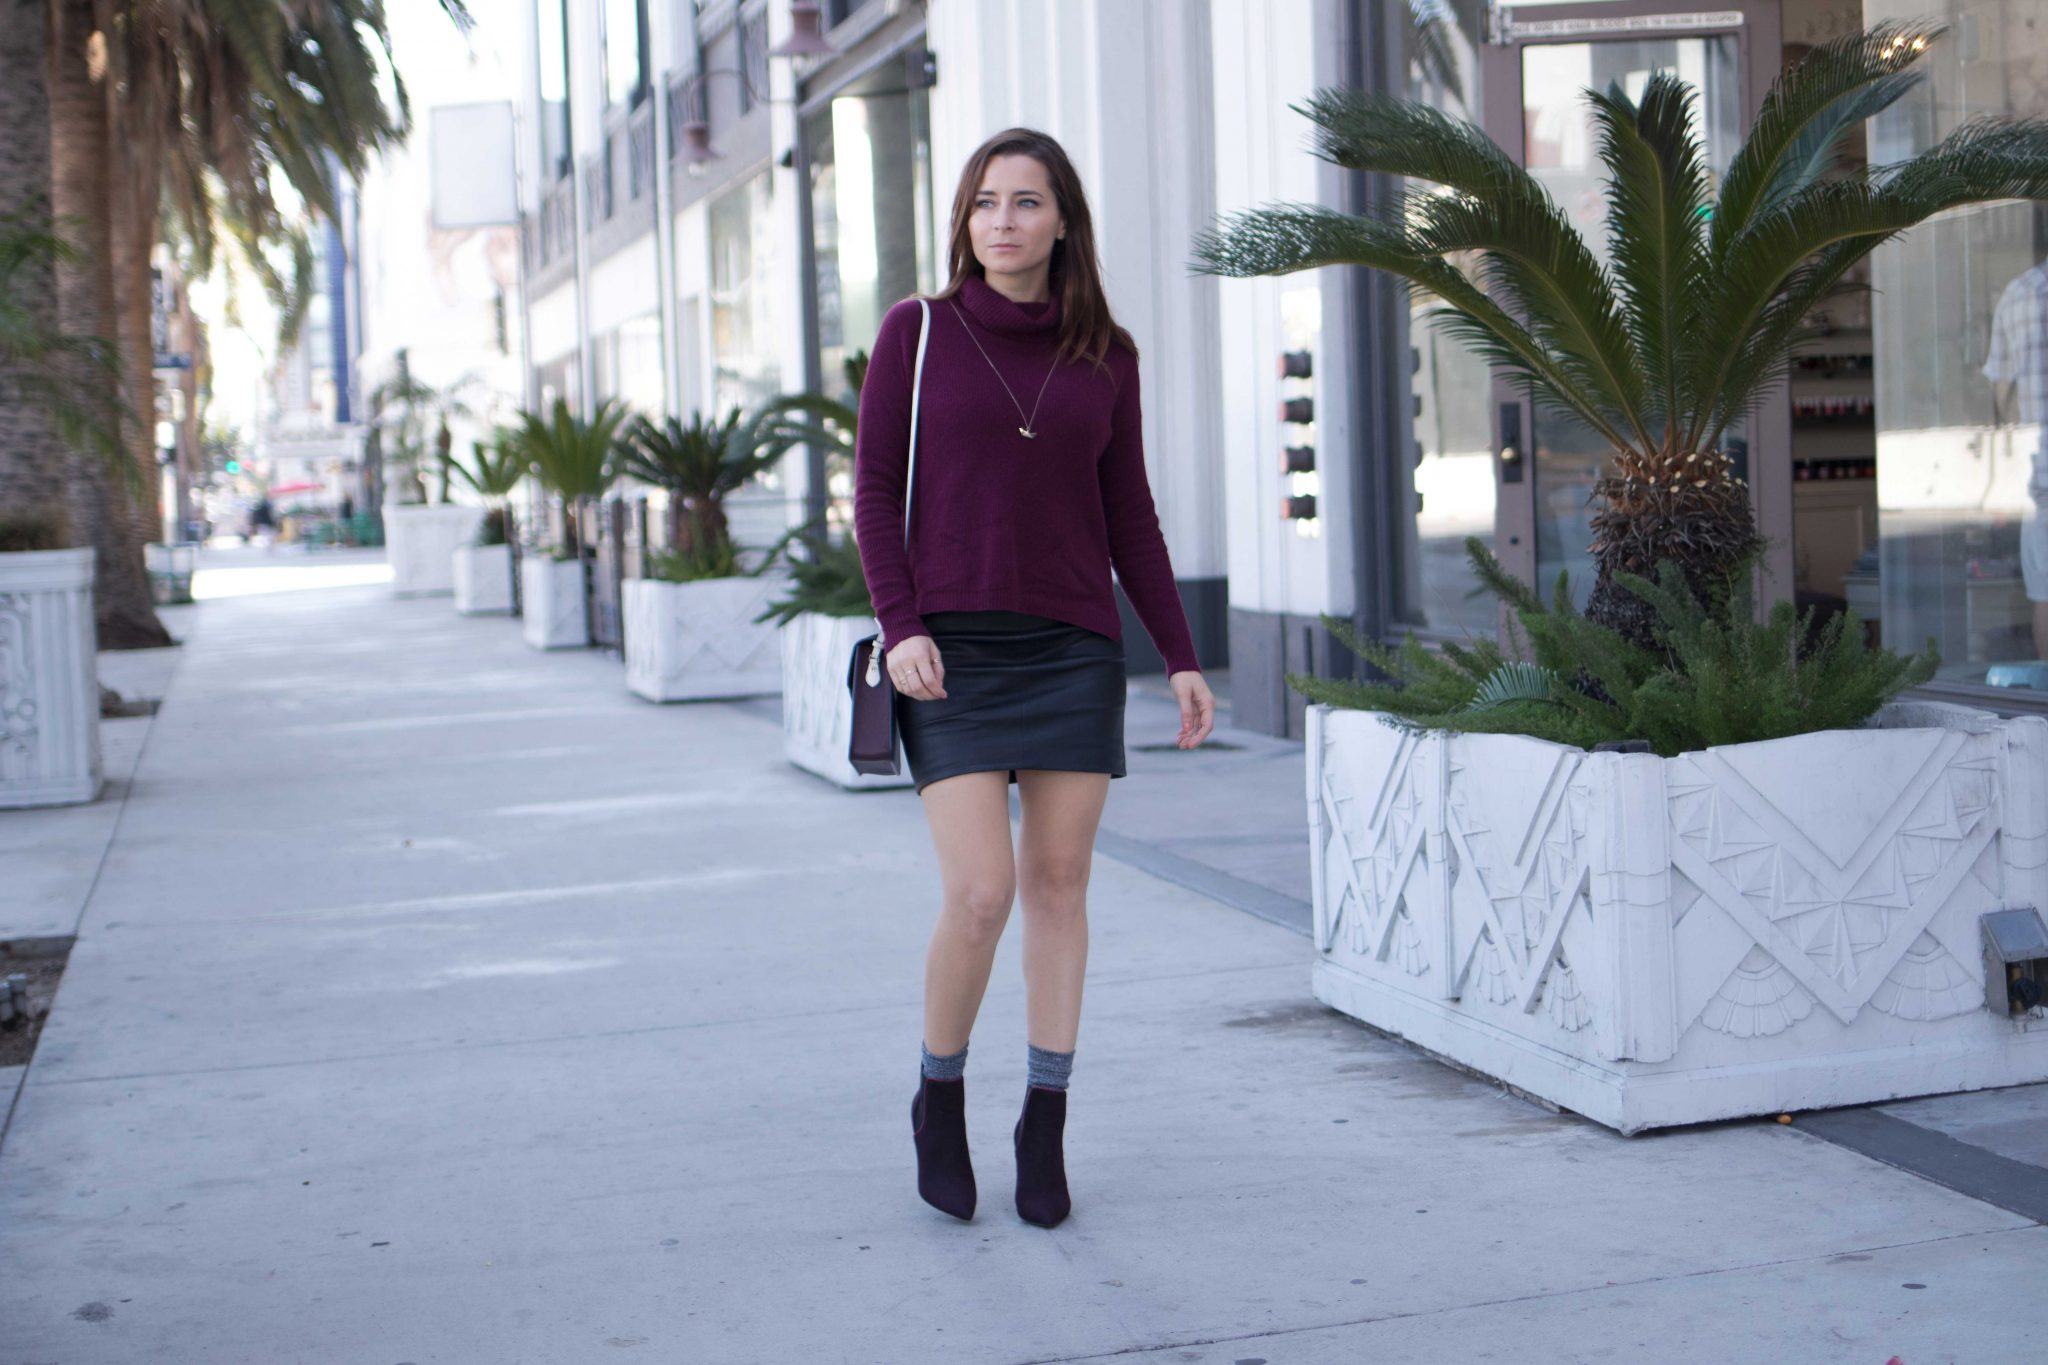 Best burgundy accessories Burgundy Handbags and Burgundy Shoes Fall winter 2017. Read more on Houseofcomil.com and discover the designers Strathberry and Erin Adamson Luxury Shoes